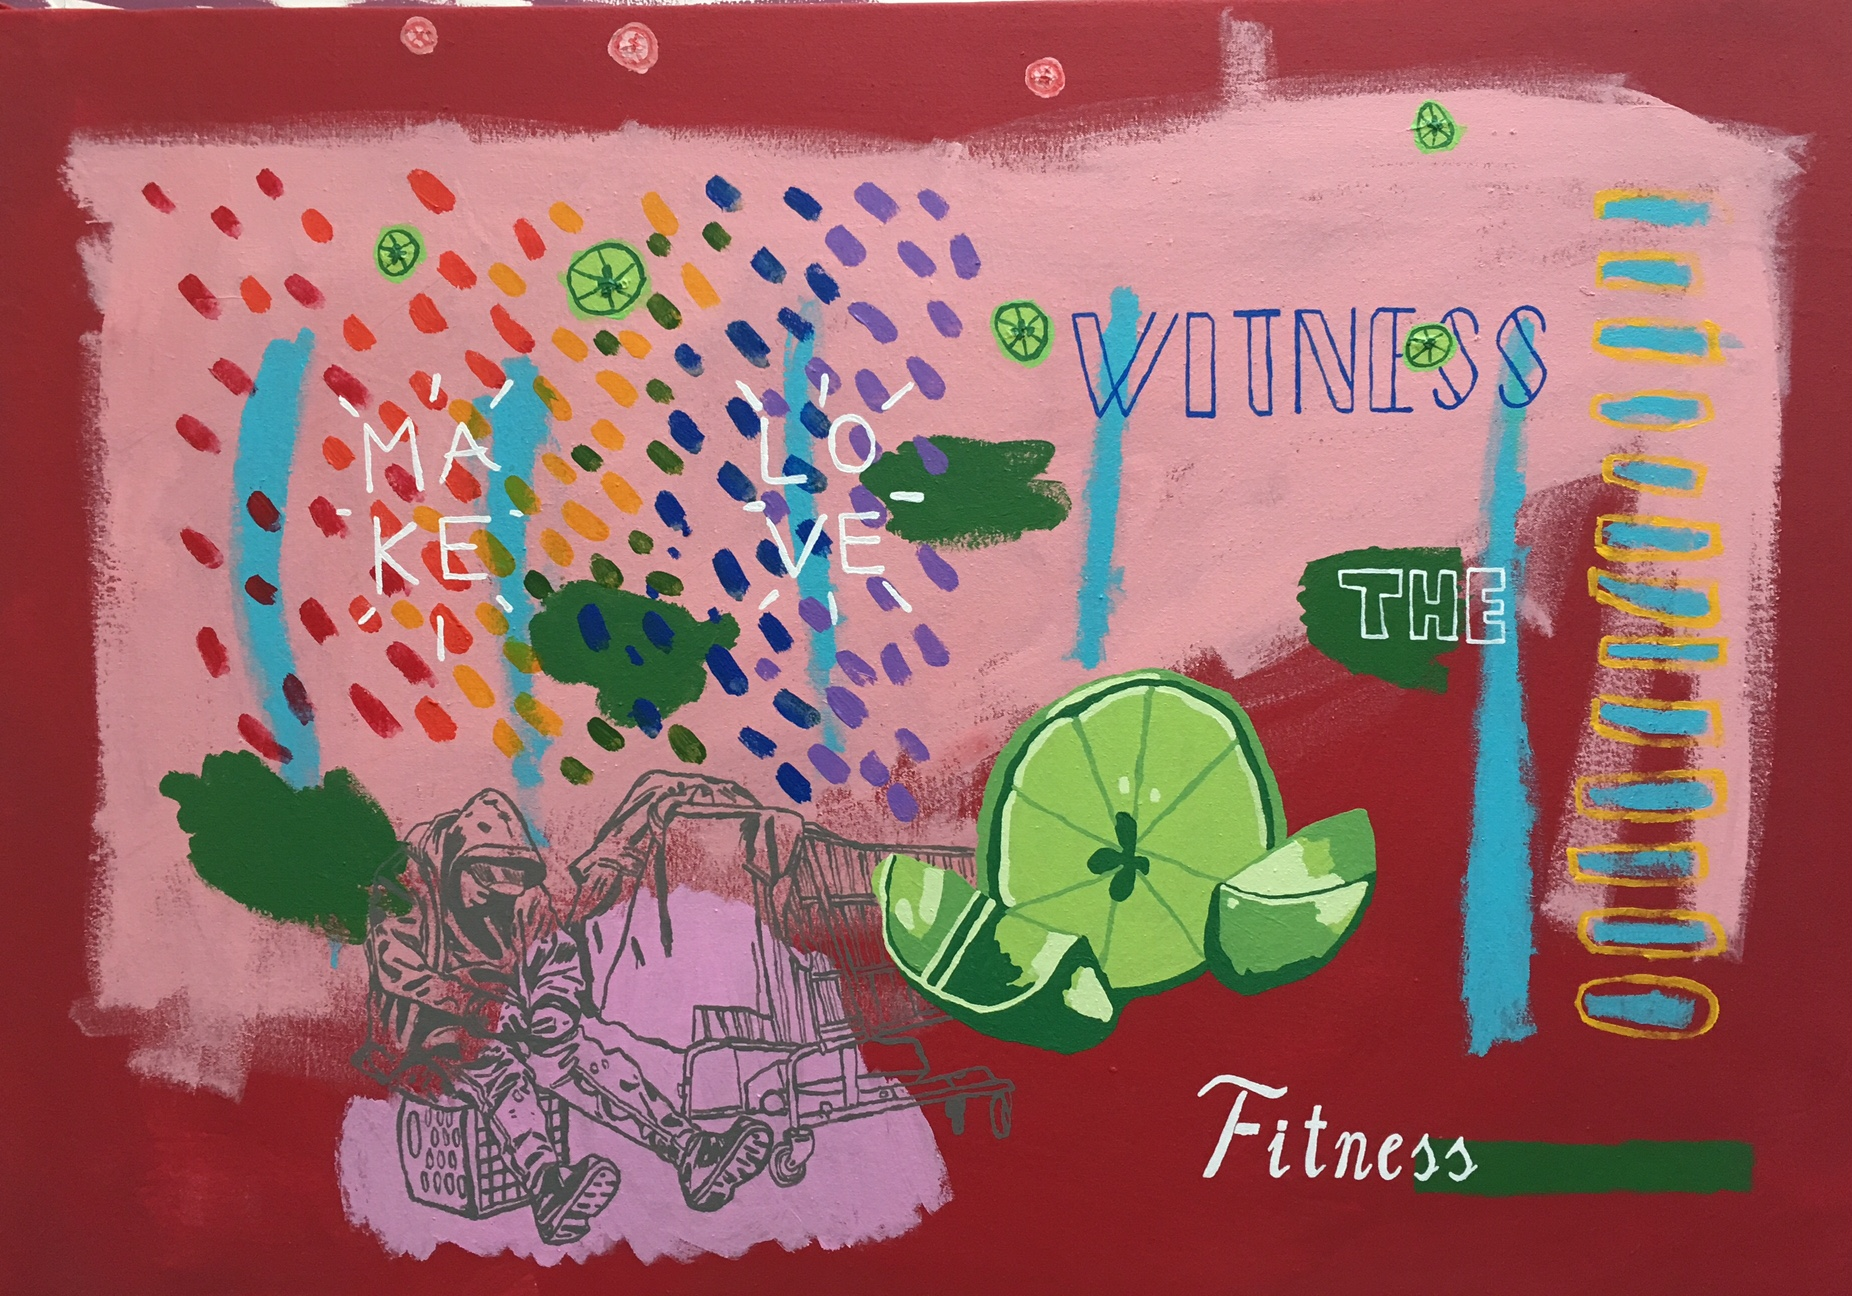 Witness the Fitness 2017